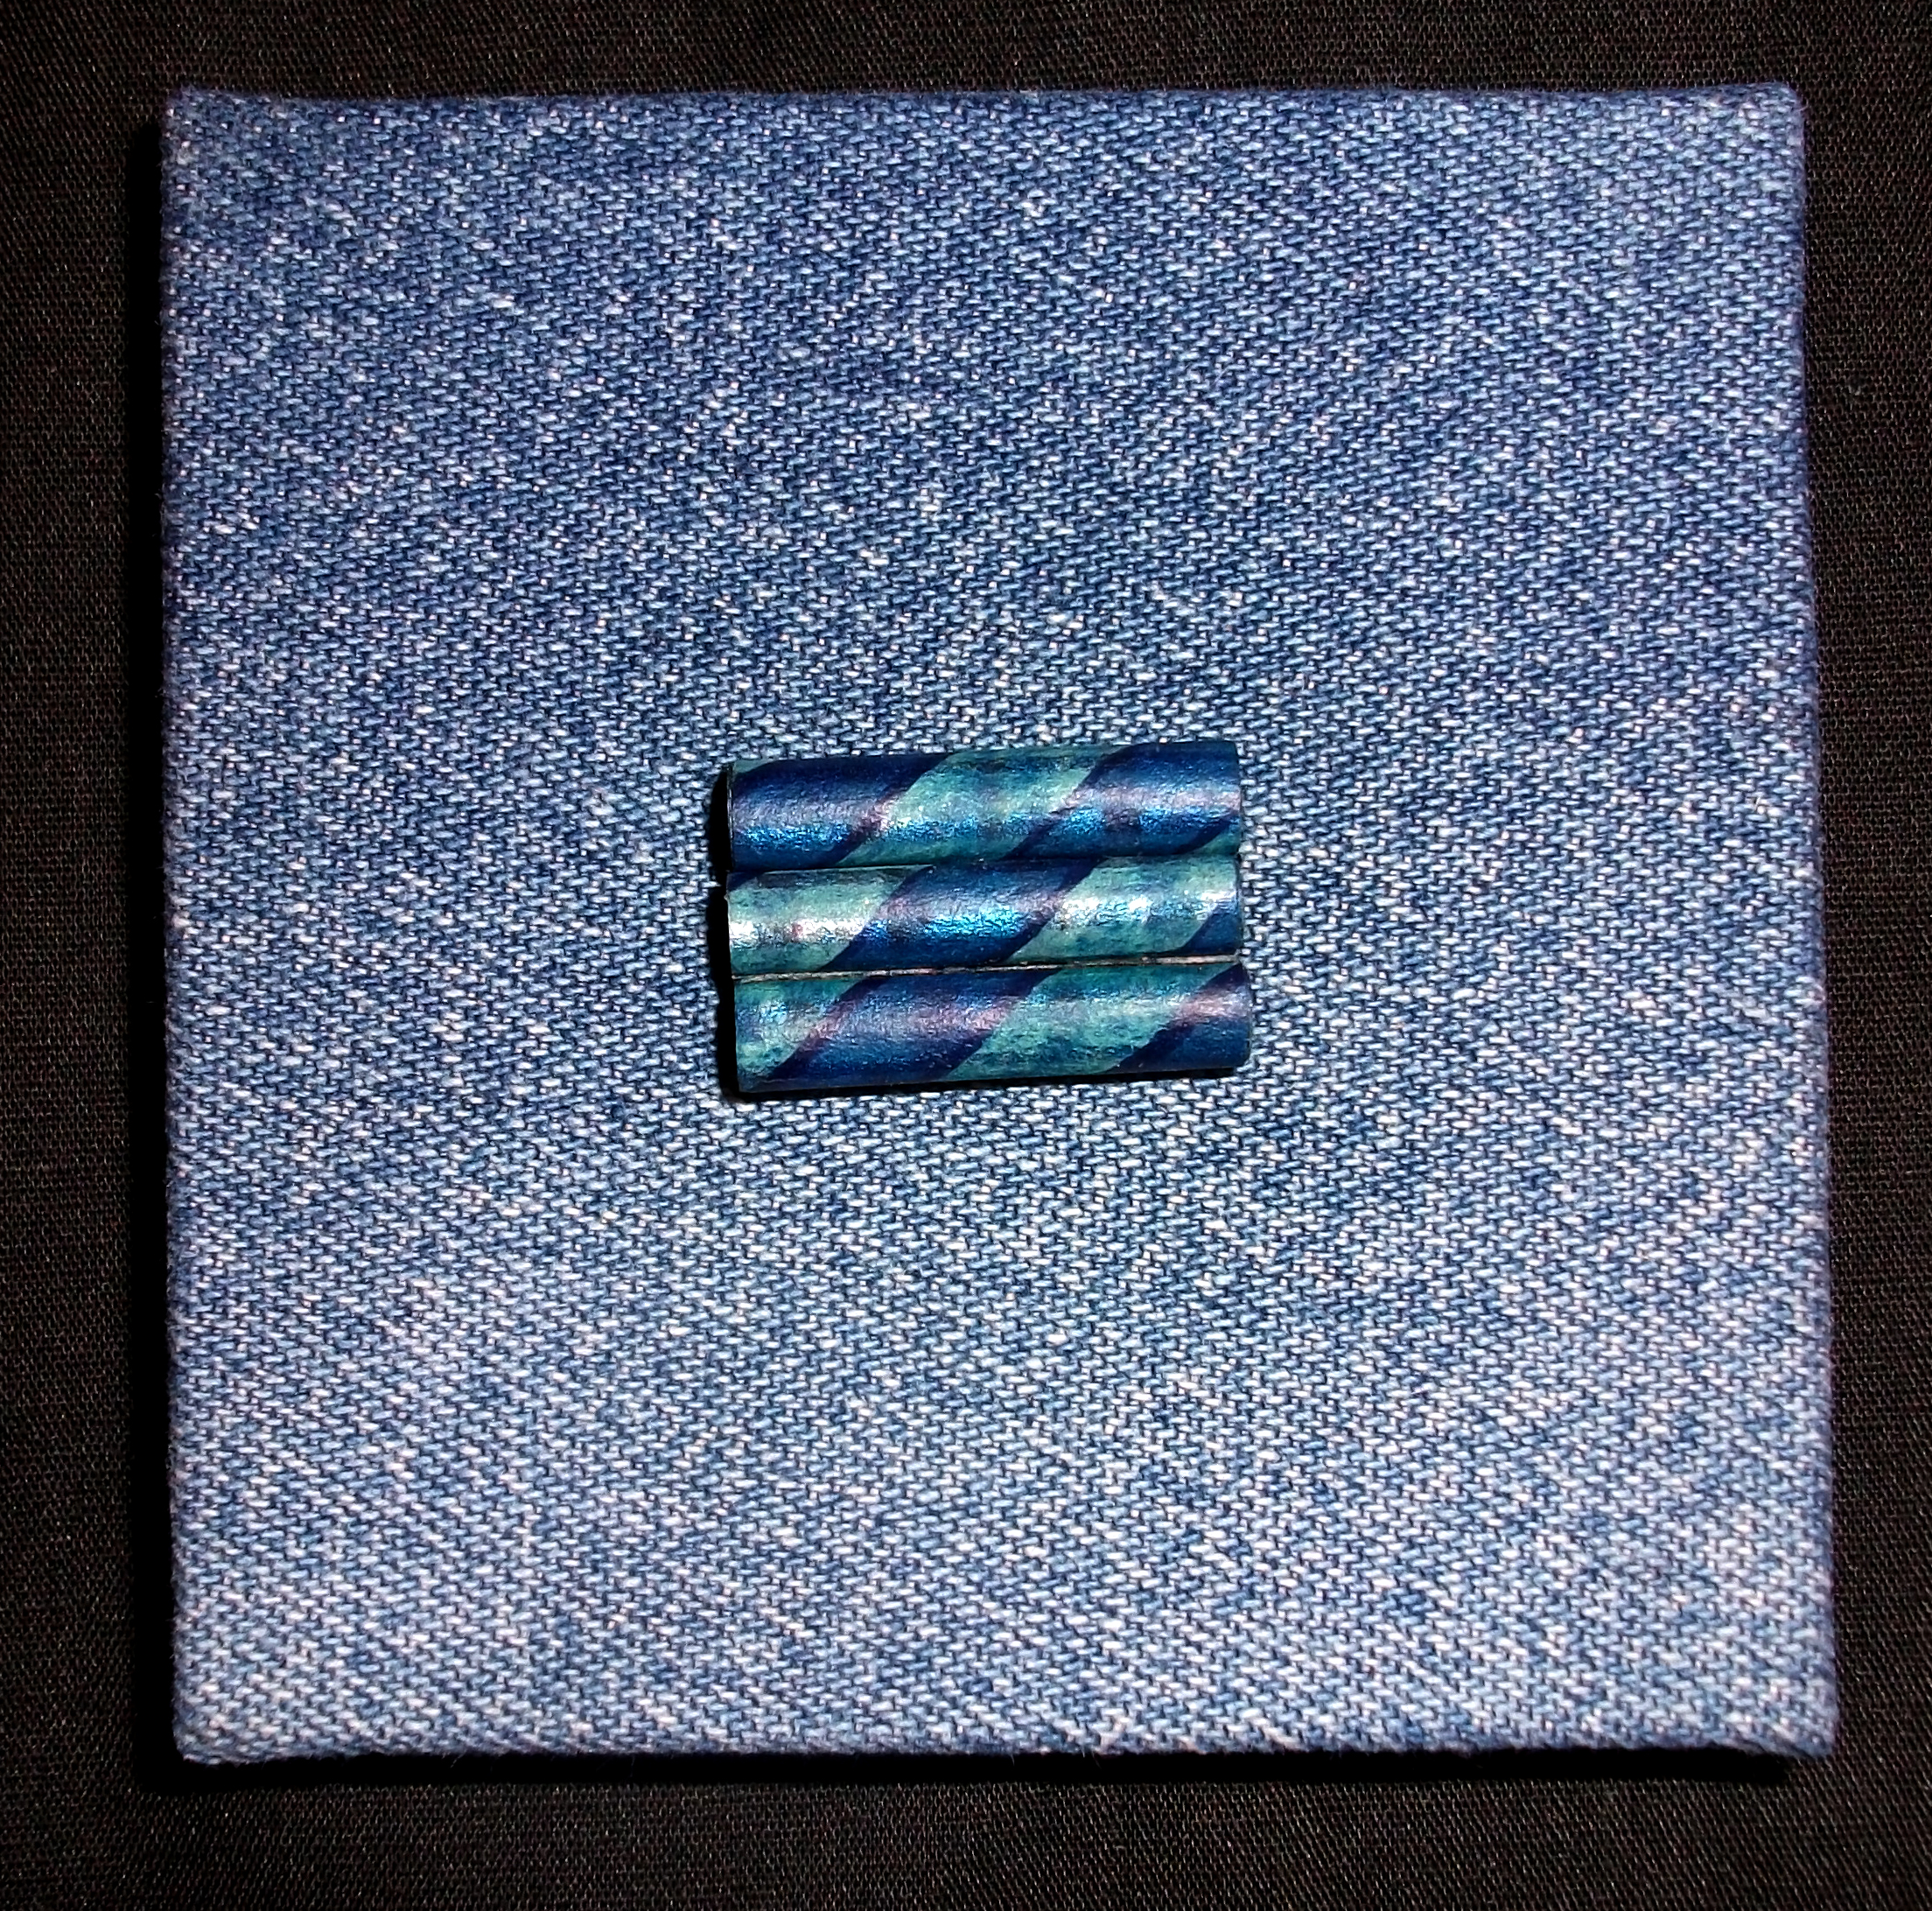 Some Blues, Lou Kroner, Inkjet printed on Canson paper, paste paper end papers and beads, recycled bluejeans, Ohio, 2011,